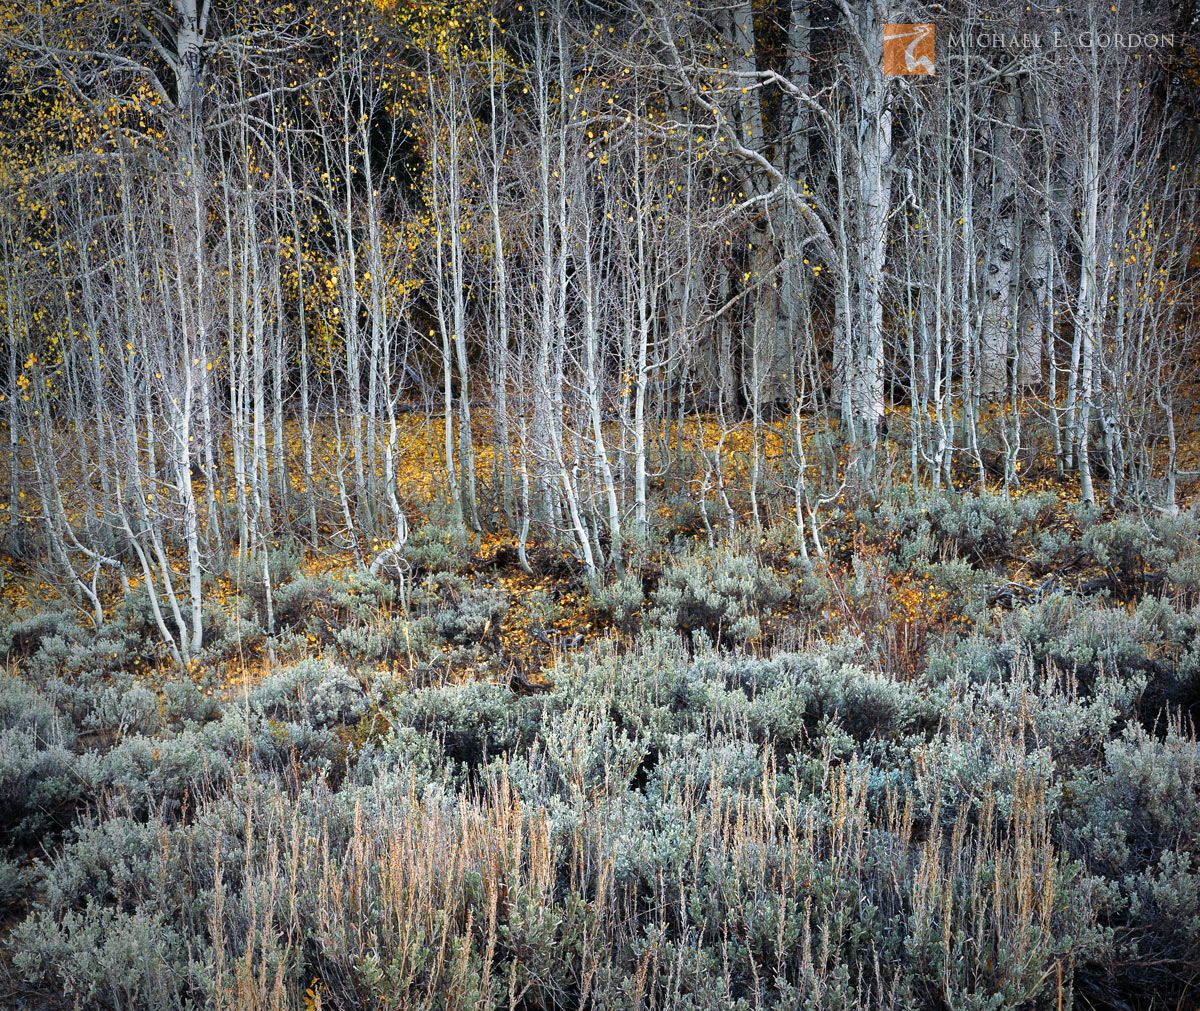 complementary, Big Sagebrush, Artemisia tridentata, Quaking Aspen, Populus tremuloides, Great Basin, late, autumn, leaves, clinging, trees, Eastern Sierra Nevada, California, photo